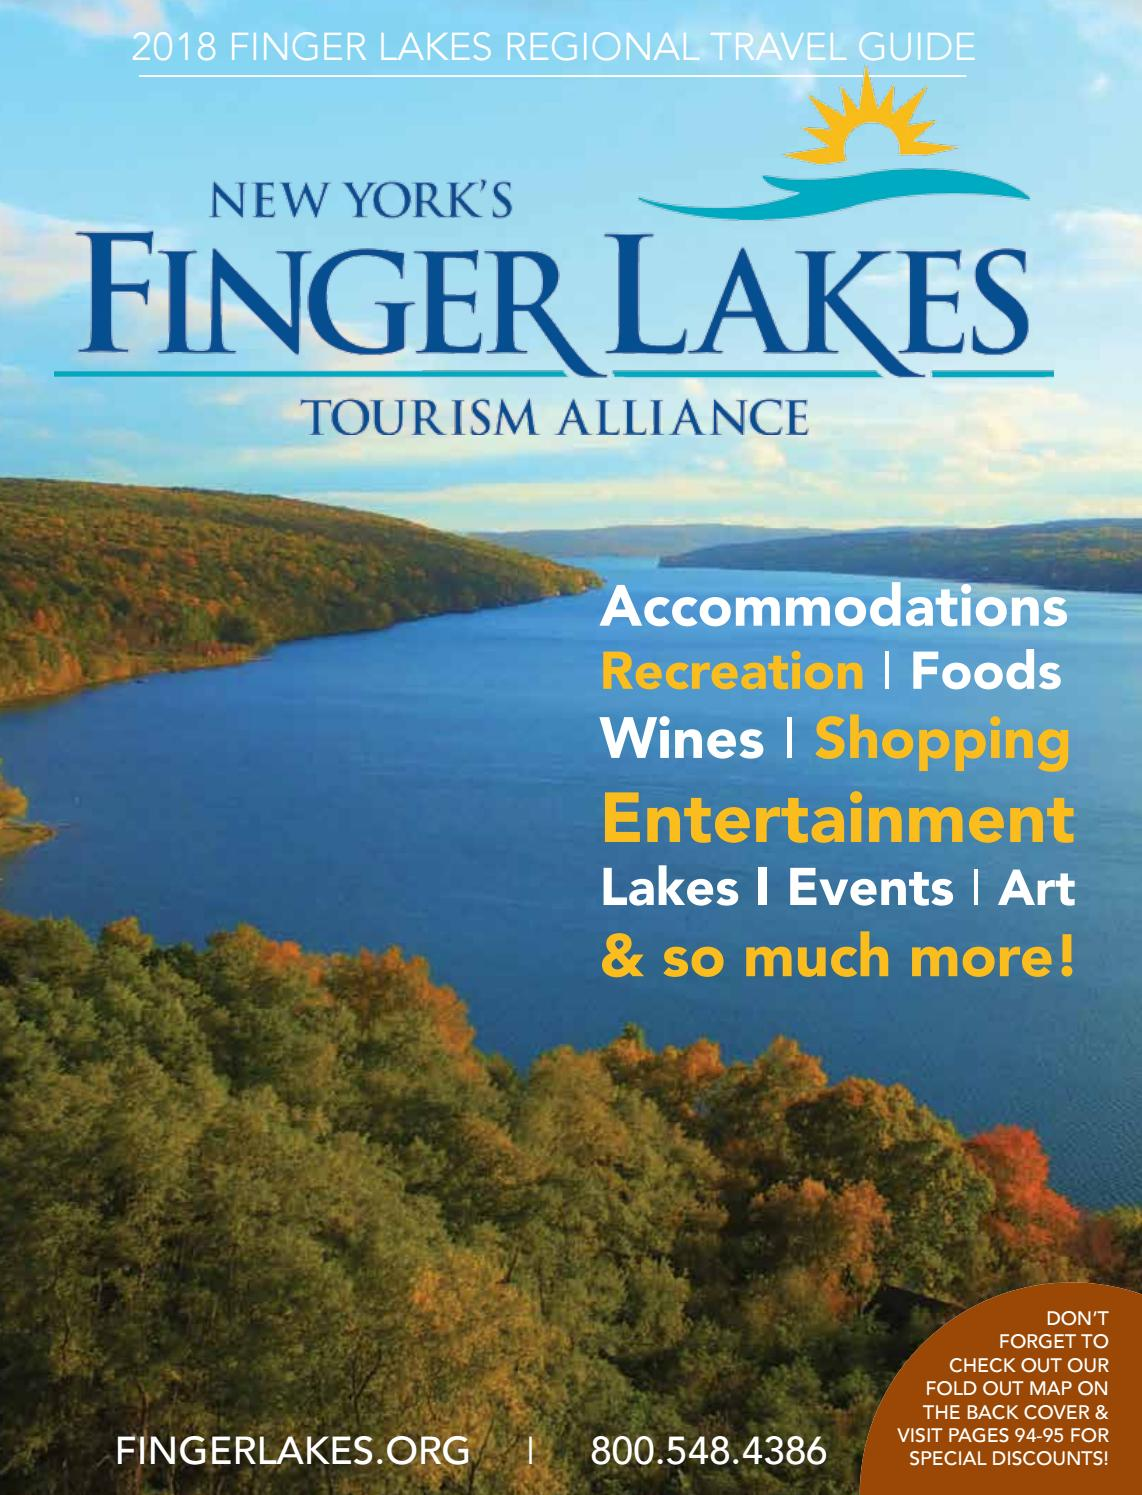 2018 Finger Lakes Regional Travel Guide by Jessica Robideau - issuu